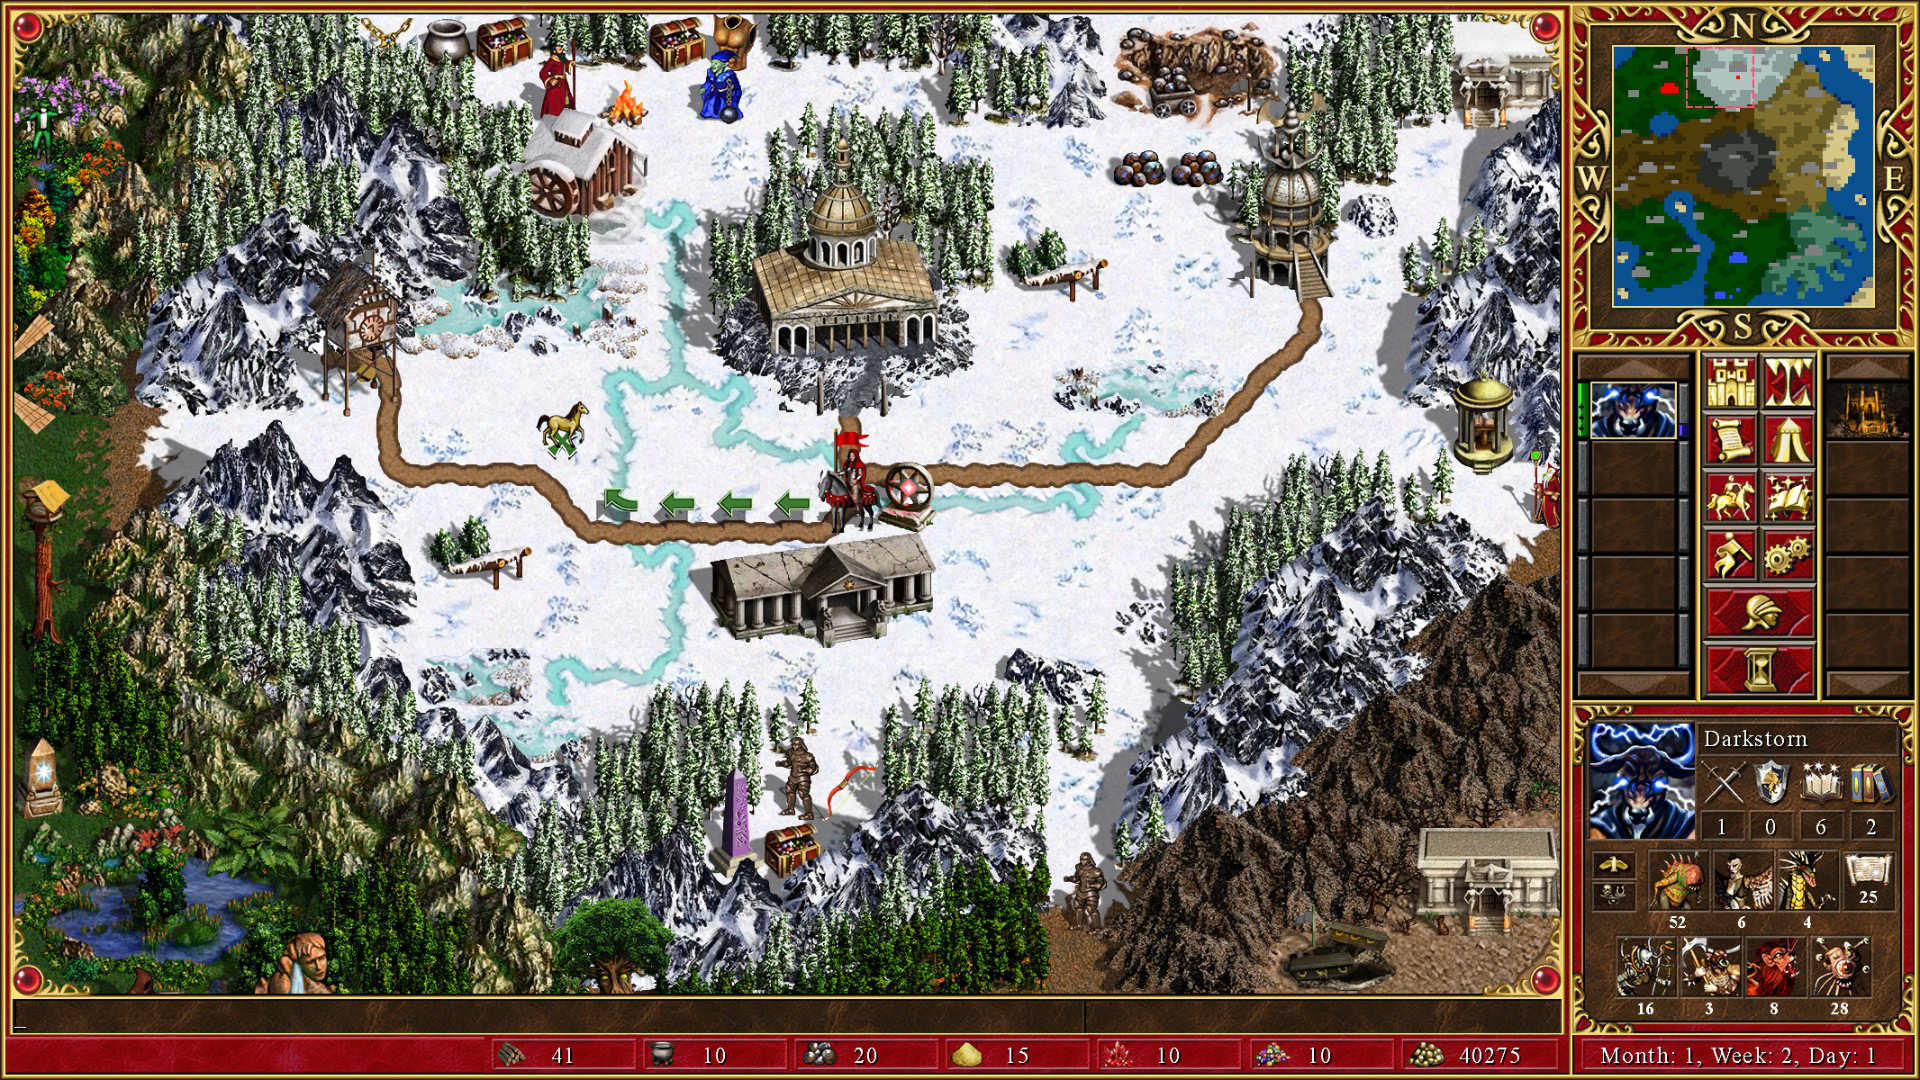 Heroes of Might & Magic III - HD [Steam Gift] (RU+CIS)